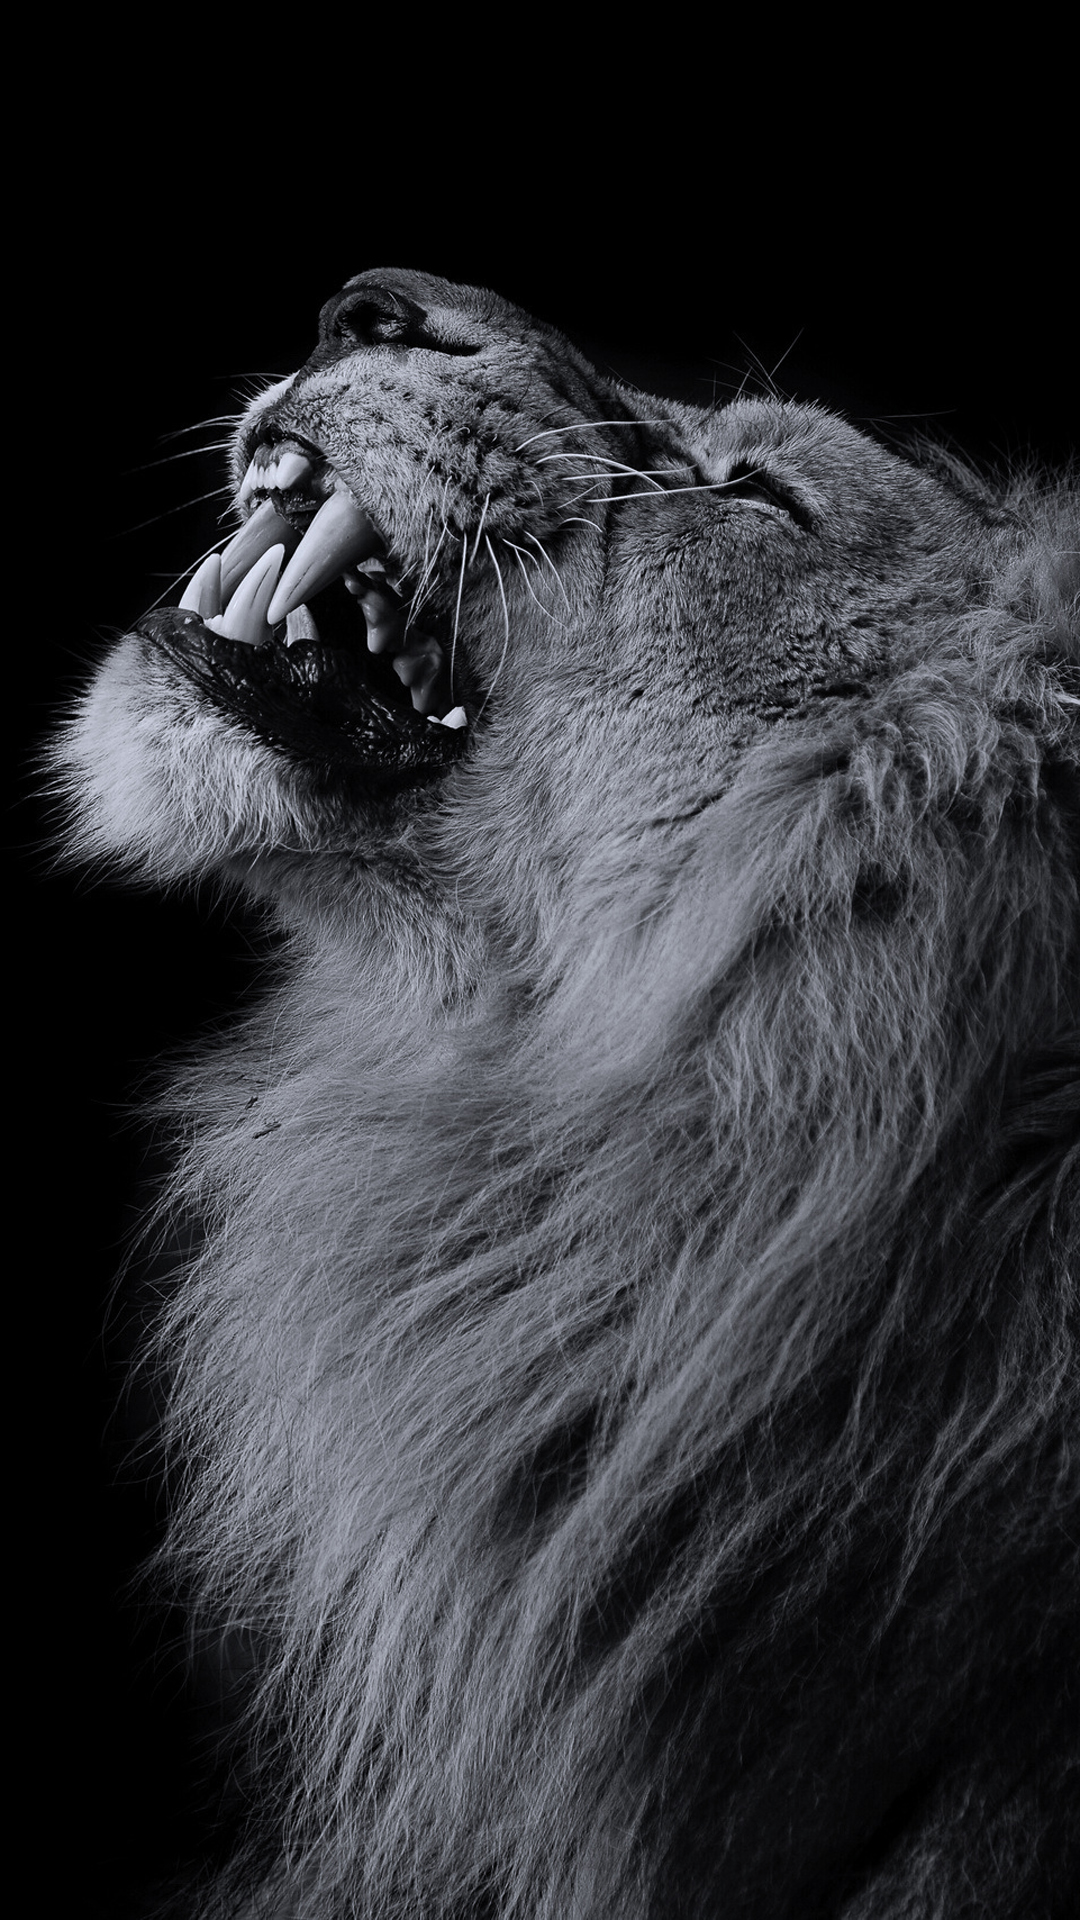 iPhone wallpaper lion2 Lion